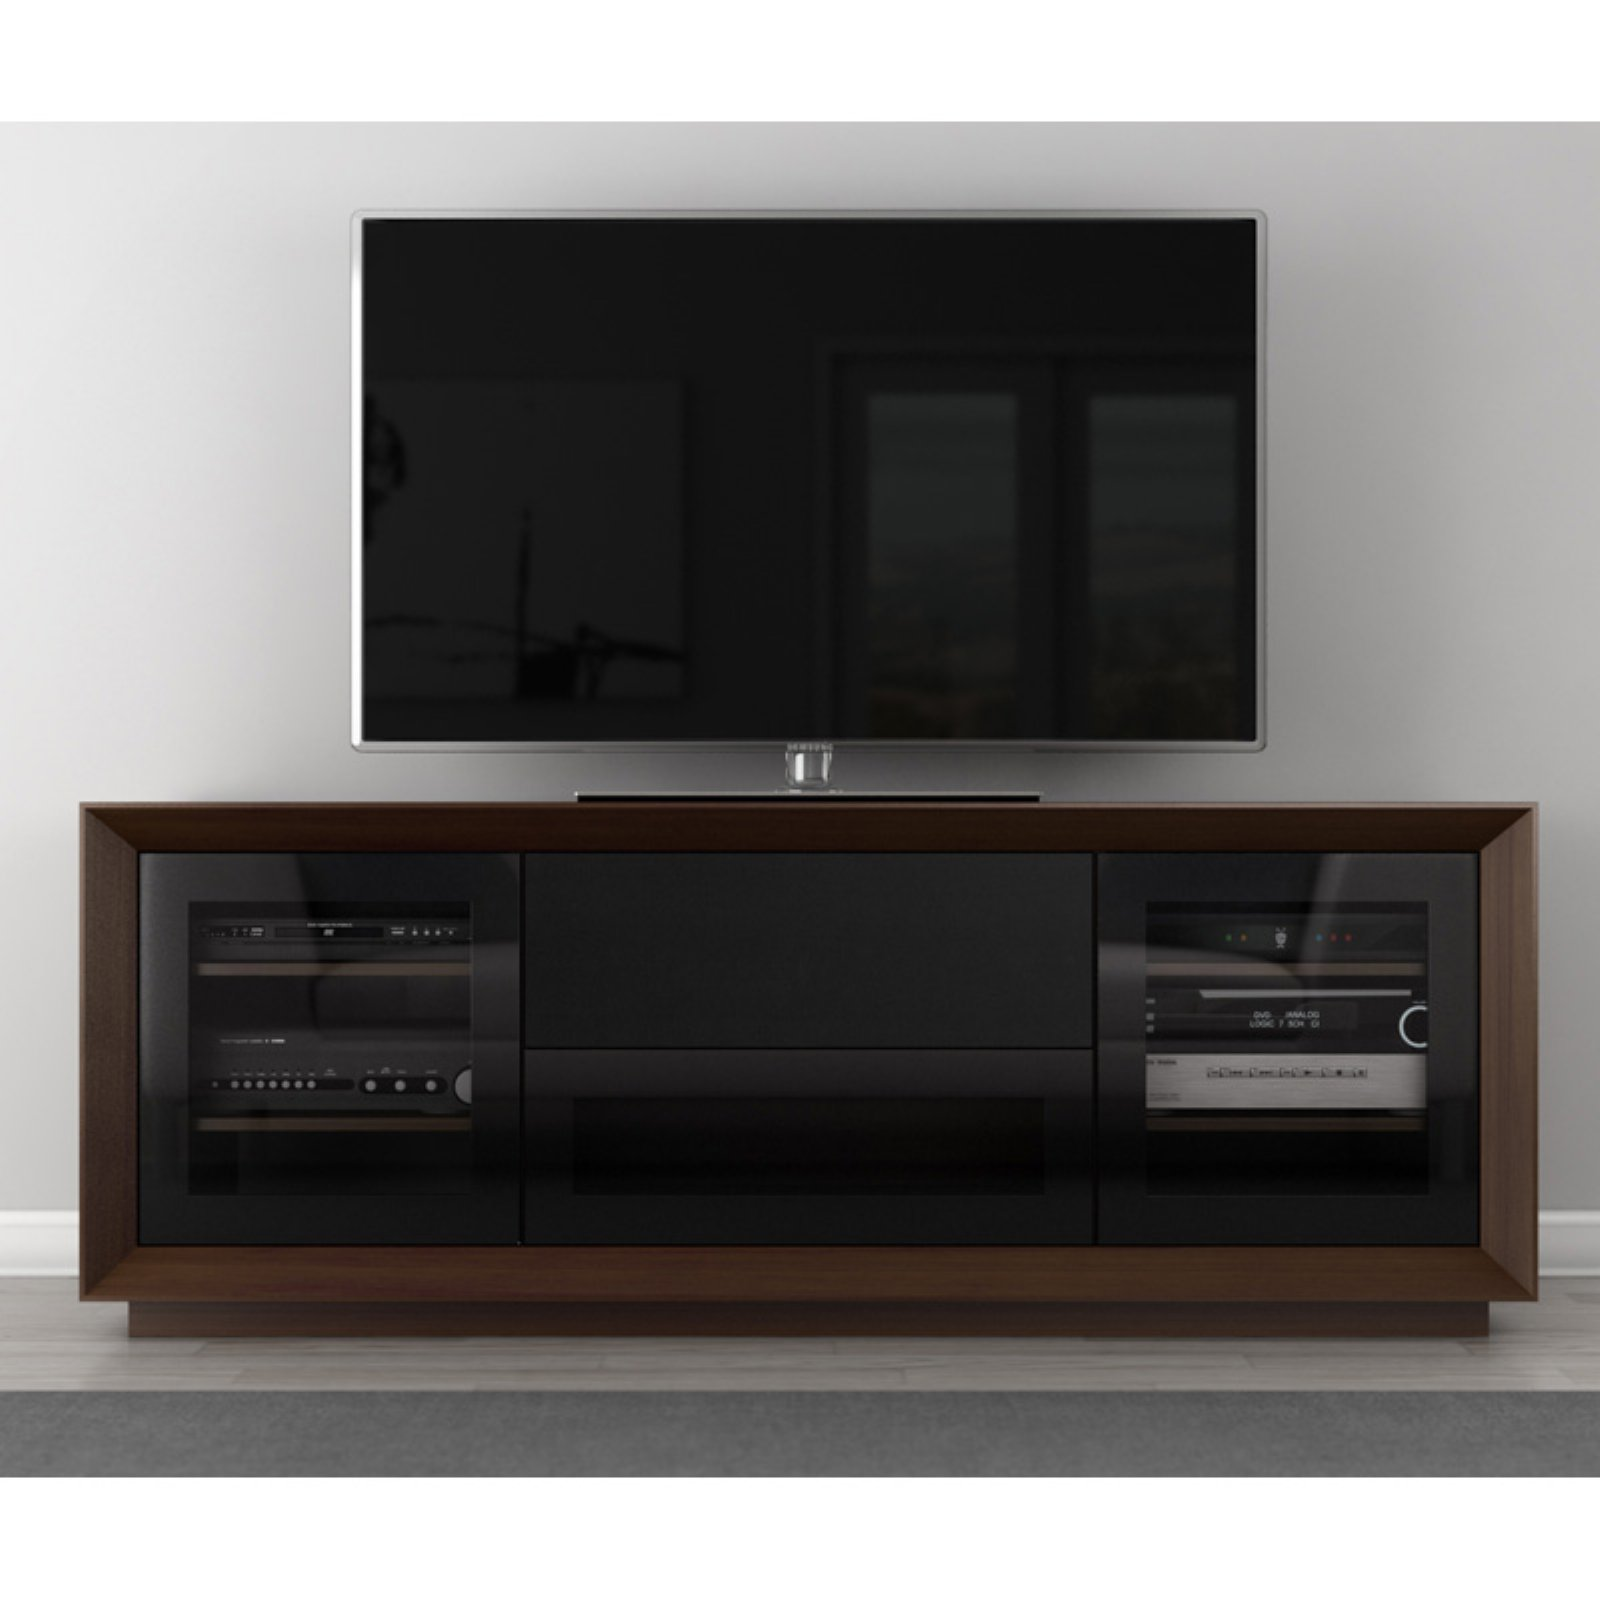 Furnitech Signature Home Collection 70 in. TV Stand - Walnut